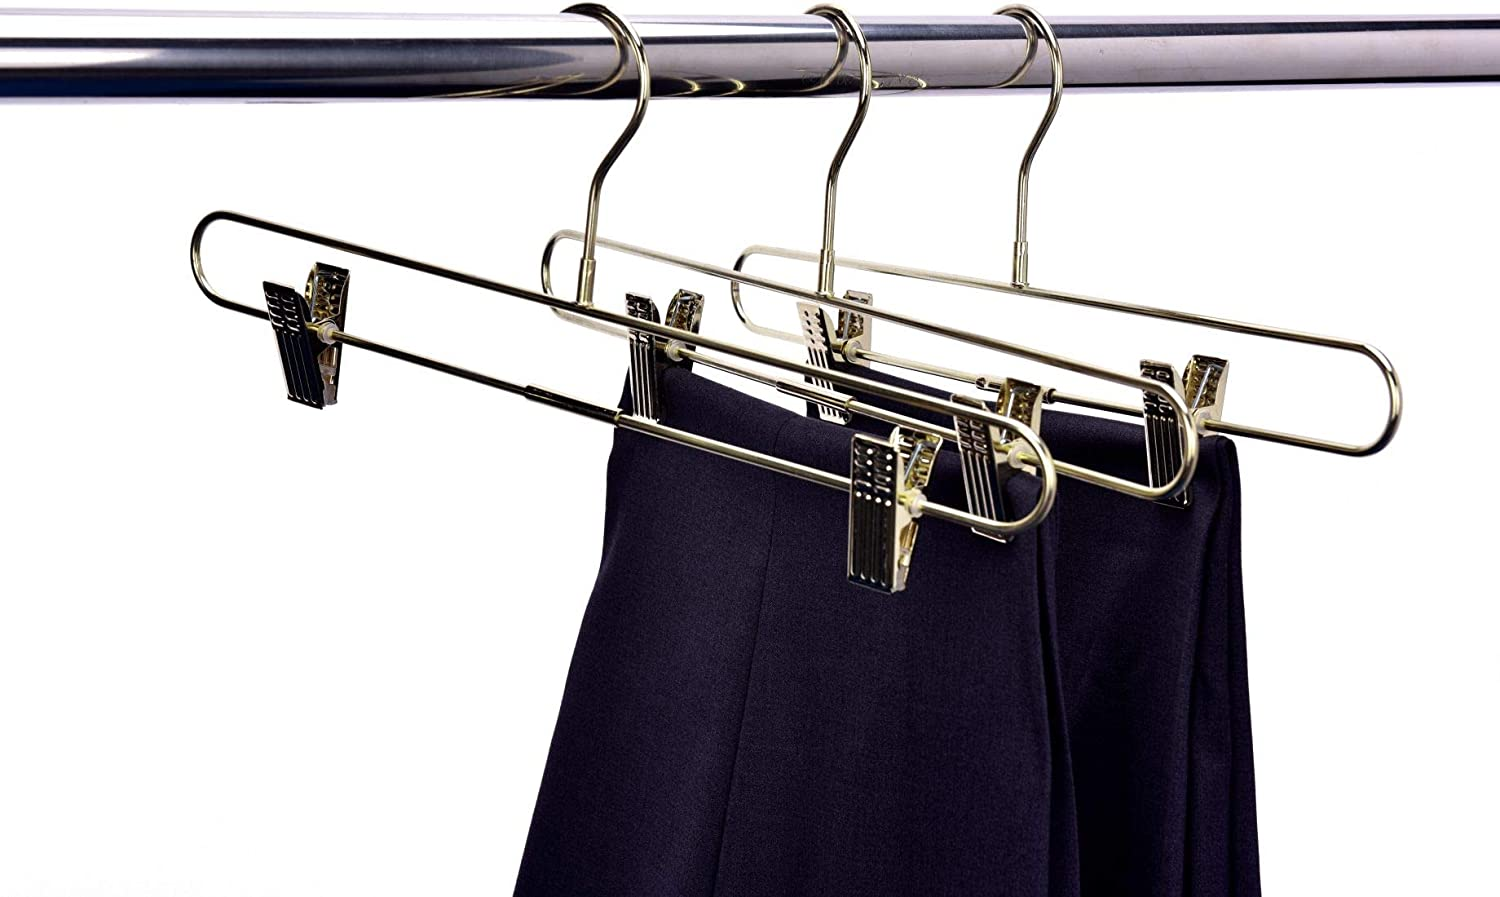 Anti-Rust Jean Slack /& Trouser Hangers 10-Pack Pant /& Skirt Hanger Set Quality Pant Hangers Pants Gold Pant Hangers with Clips Durable 360-Degree Metal Swivel Hook Hangers for Clothes